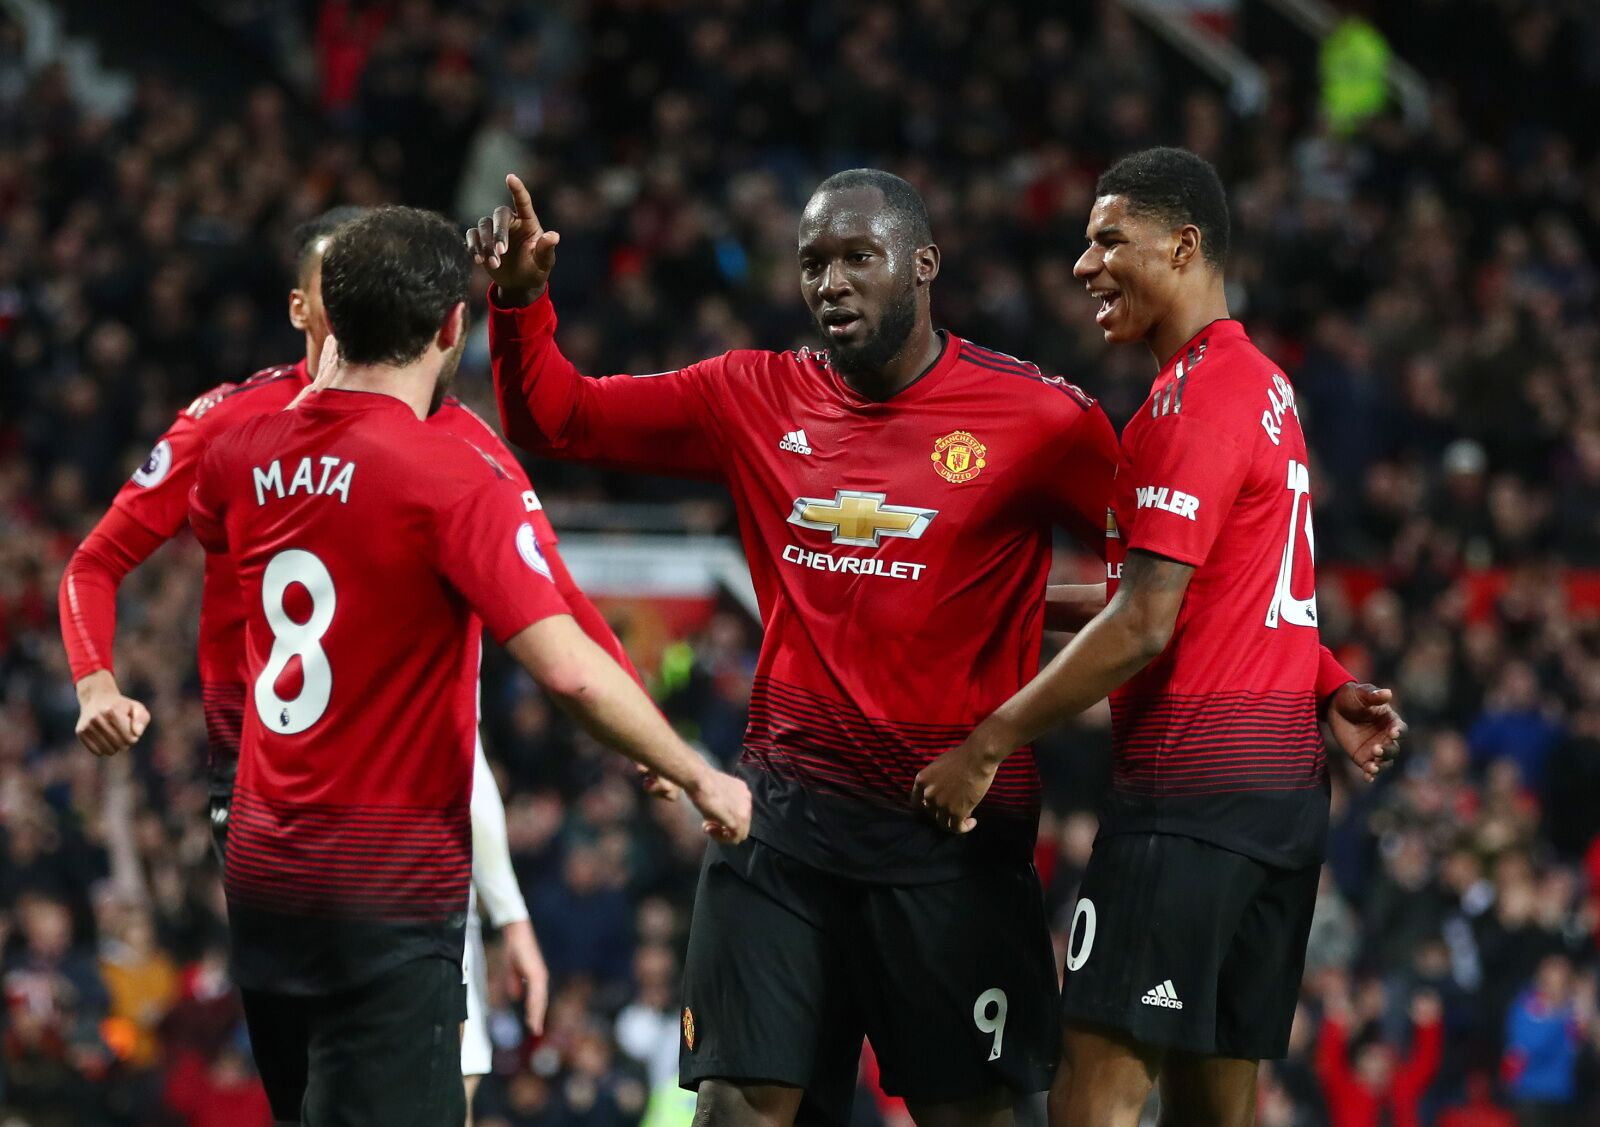 Manchester United vacated the middle to rediscover attacking fluency